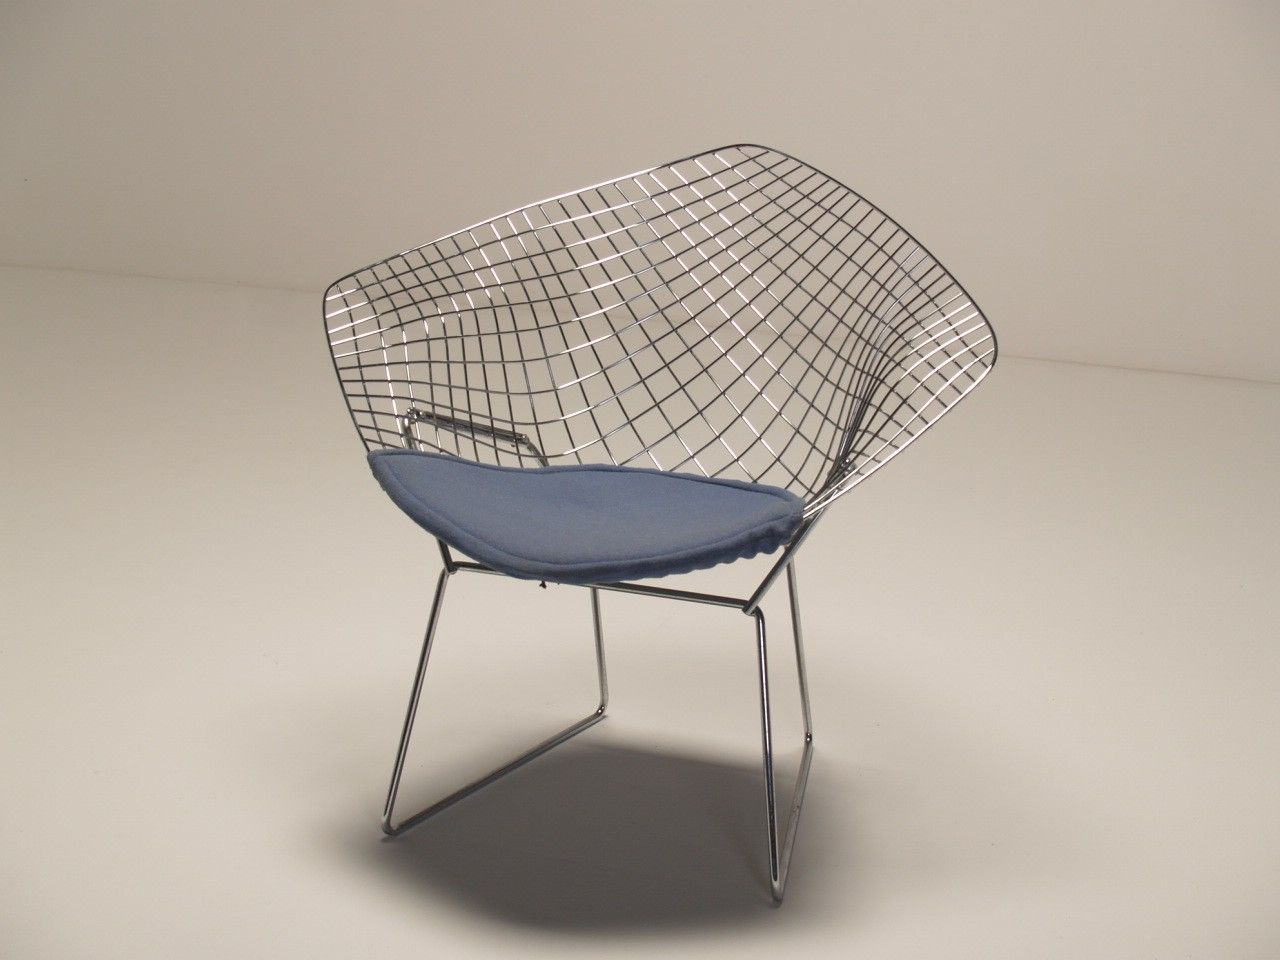 Harry Bertoia   Diamond Chair A Later Reproduction (maker Unknown) Of A  Harry Bertoia Diamond Lounge Chair. The Diamond Chair Was Originally  Designed By ...